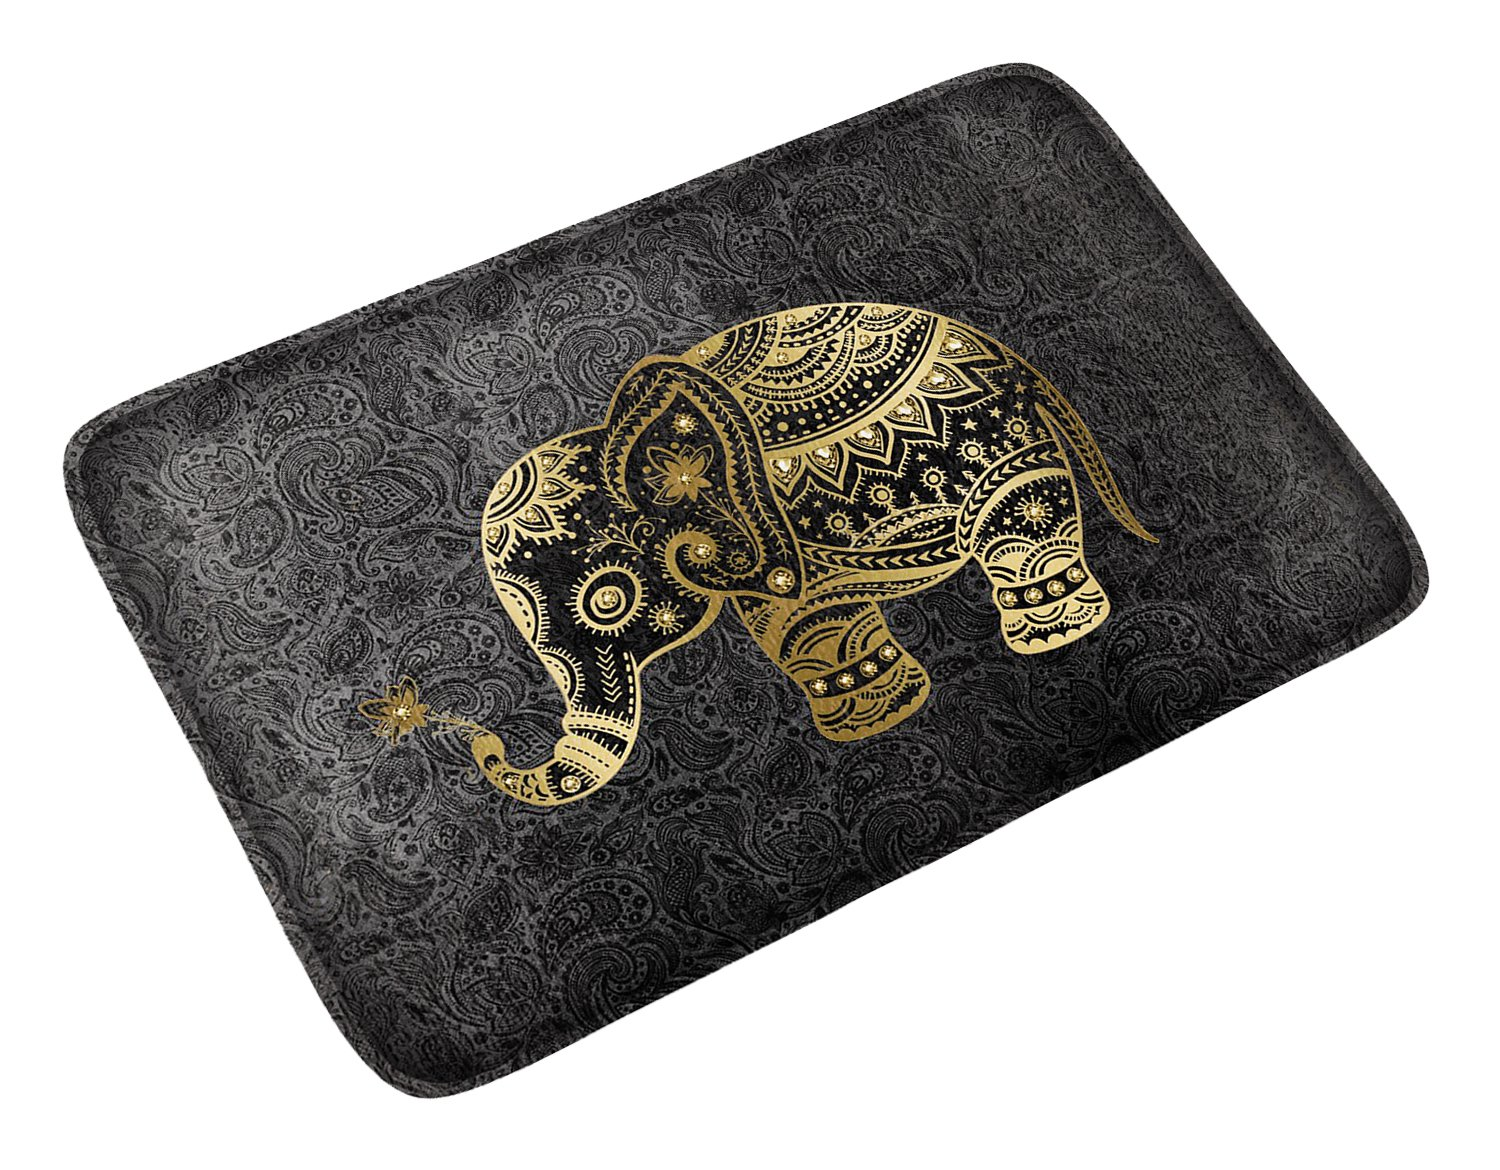 Goldwheat Doormat Floor Mat Non-slip Indoor Mat Pad Welcome Entrance Rug for Home,Kitchen,Bedroom,Bathroom-Elephant